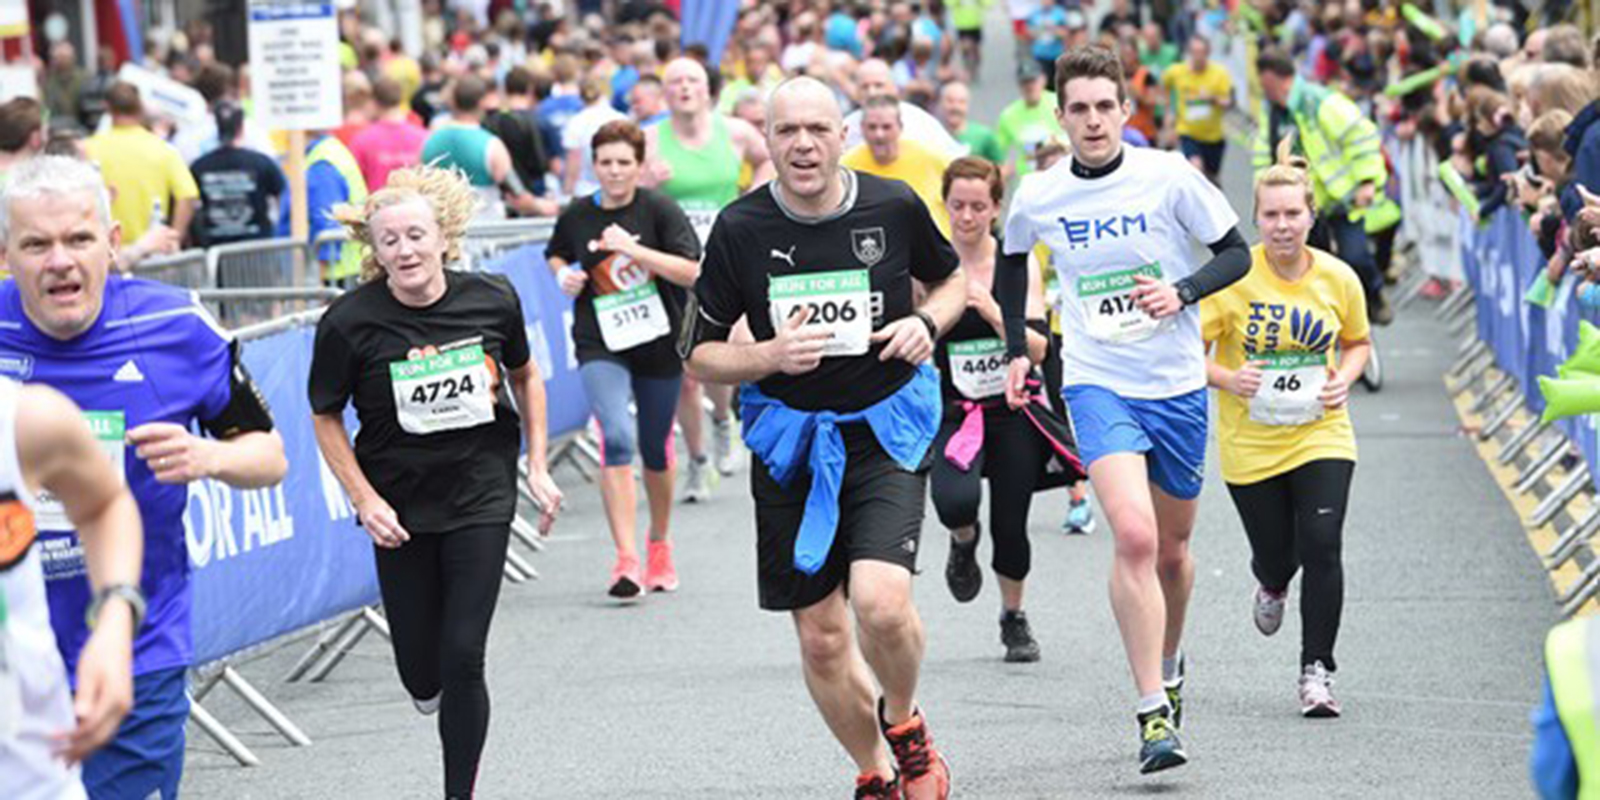 Runners at the Burnley 10k